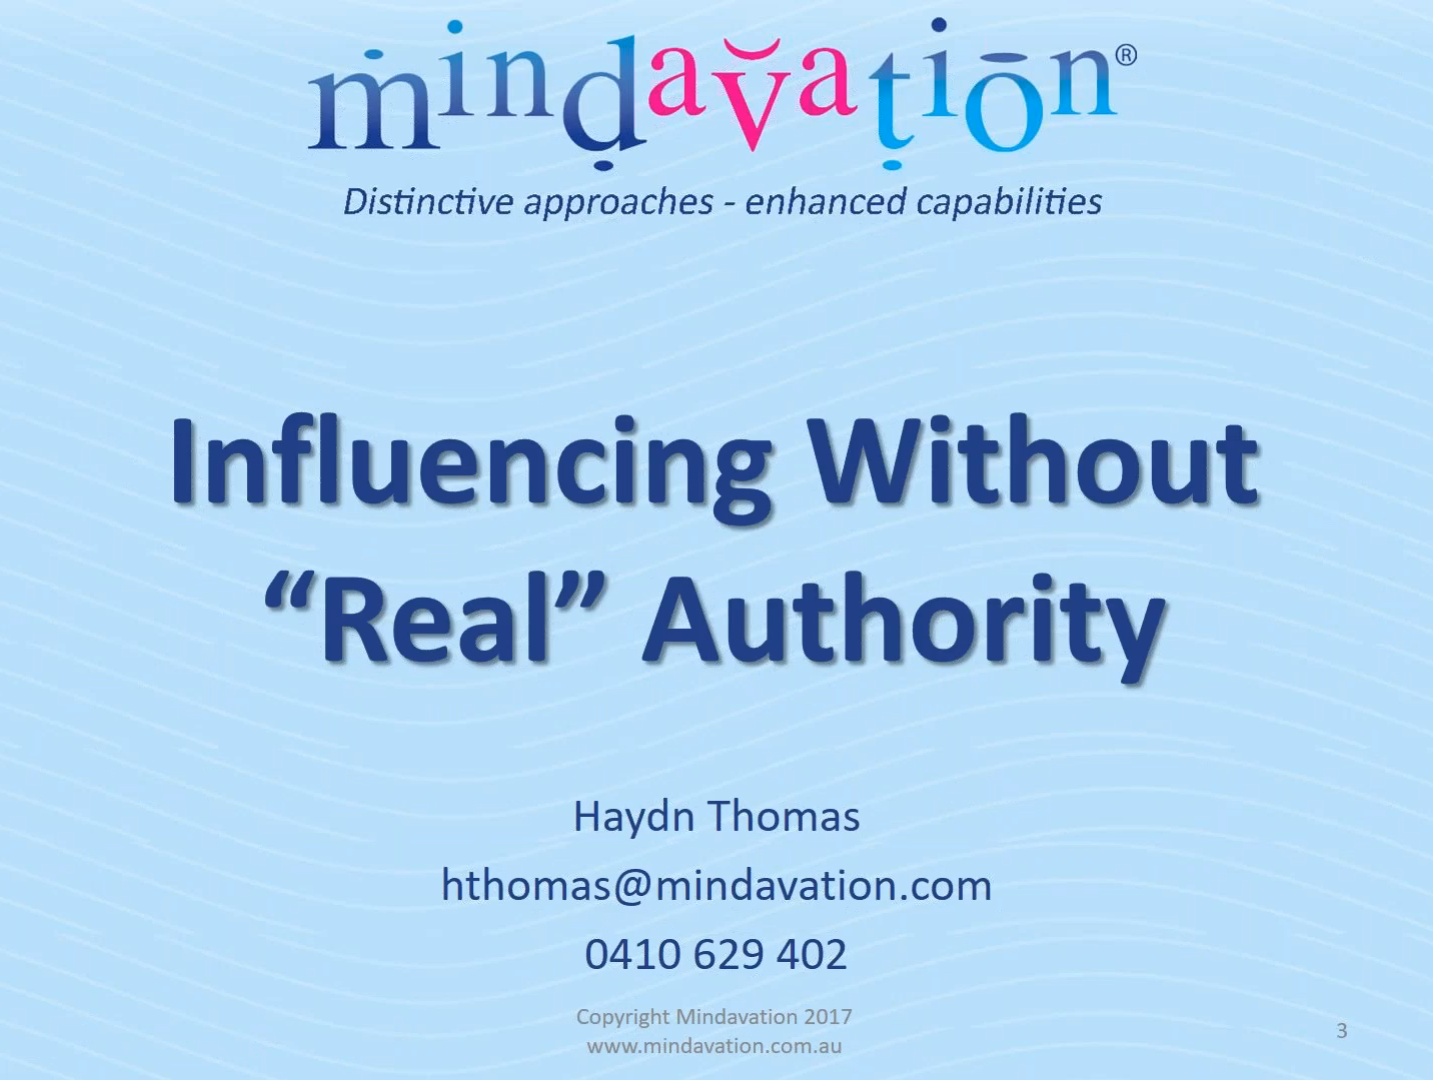 Doing the Right Things Right - Influencing Without Real Authority (Part 2)